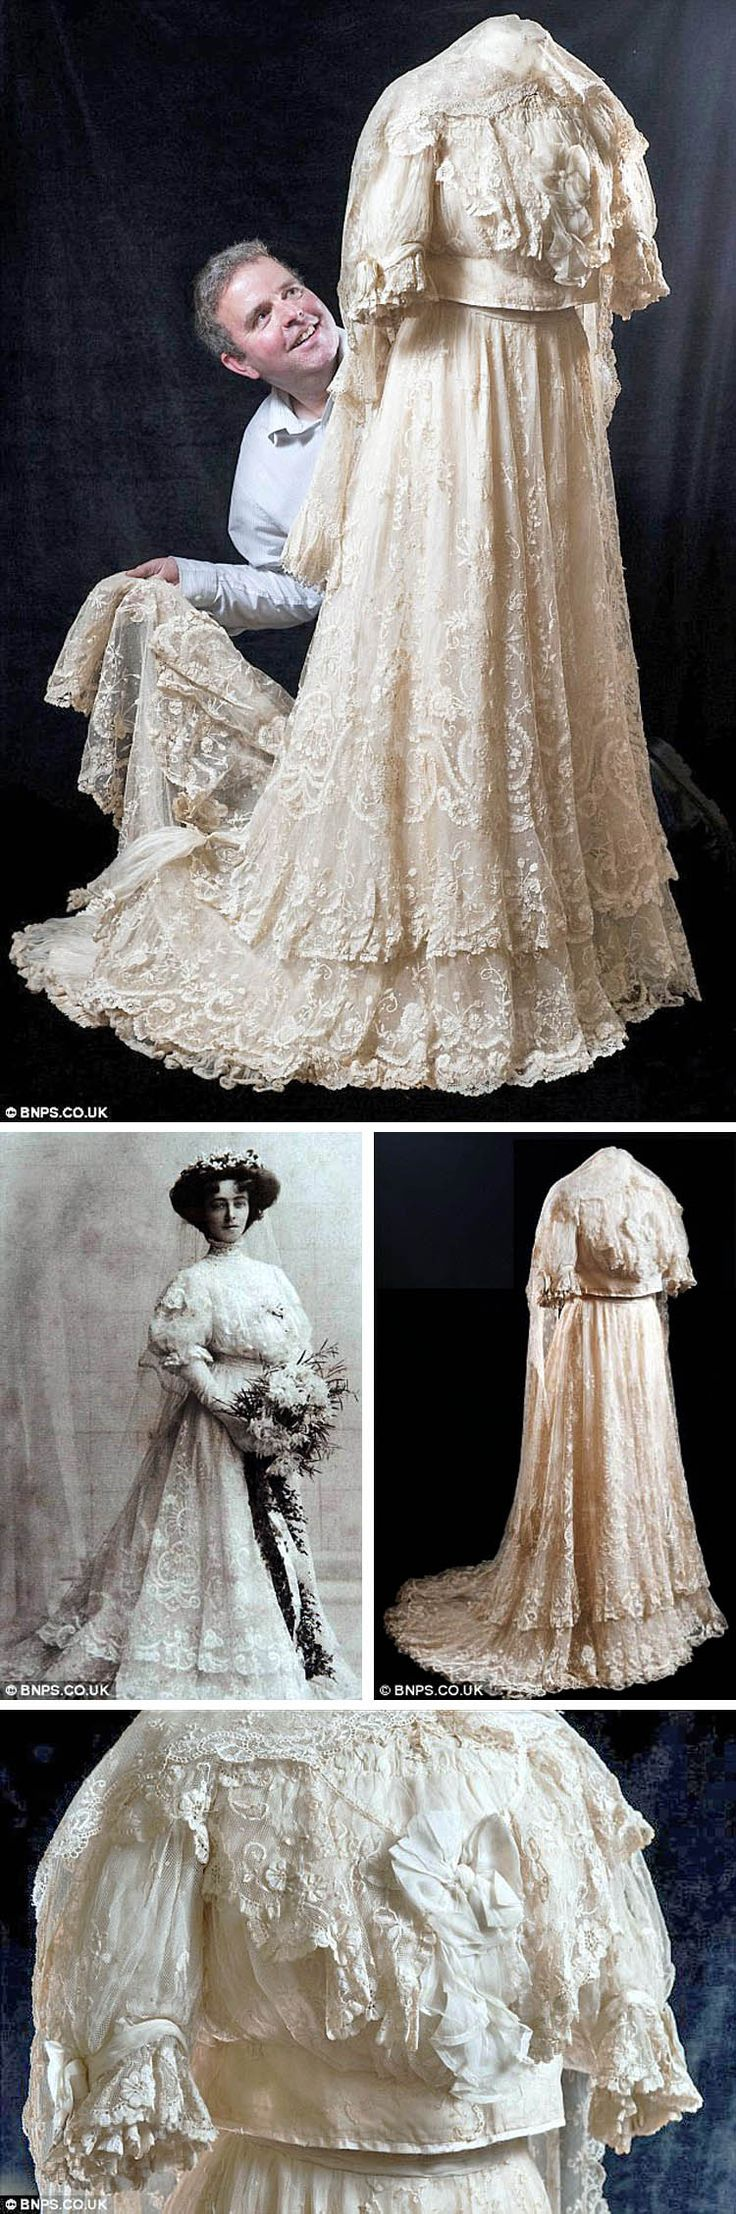 Wedding gown, 1908. Silk with Brussels lace and silk bow on bodice. Two-tier skirt with scalloped hems. Lined in satin with a border of tight concertina pleats. Train. (Shirtwaist would never have been worn untucked like this.) Worn by Ethel Dalziel for her marriage to H. Roland Cooper. Ethel's granddaughter tried to donate it to a museum, but none wanted it! It was auctioned off by Duke's in 2012. Daily Mail